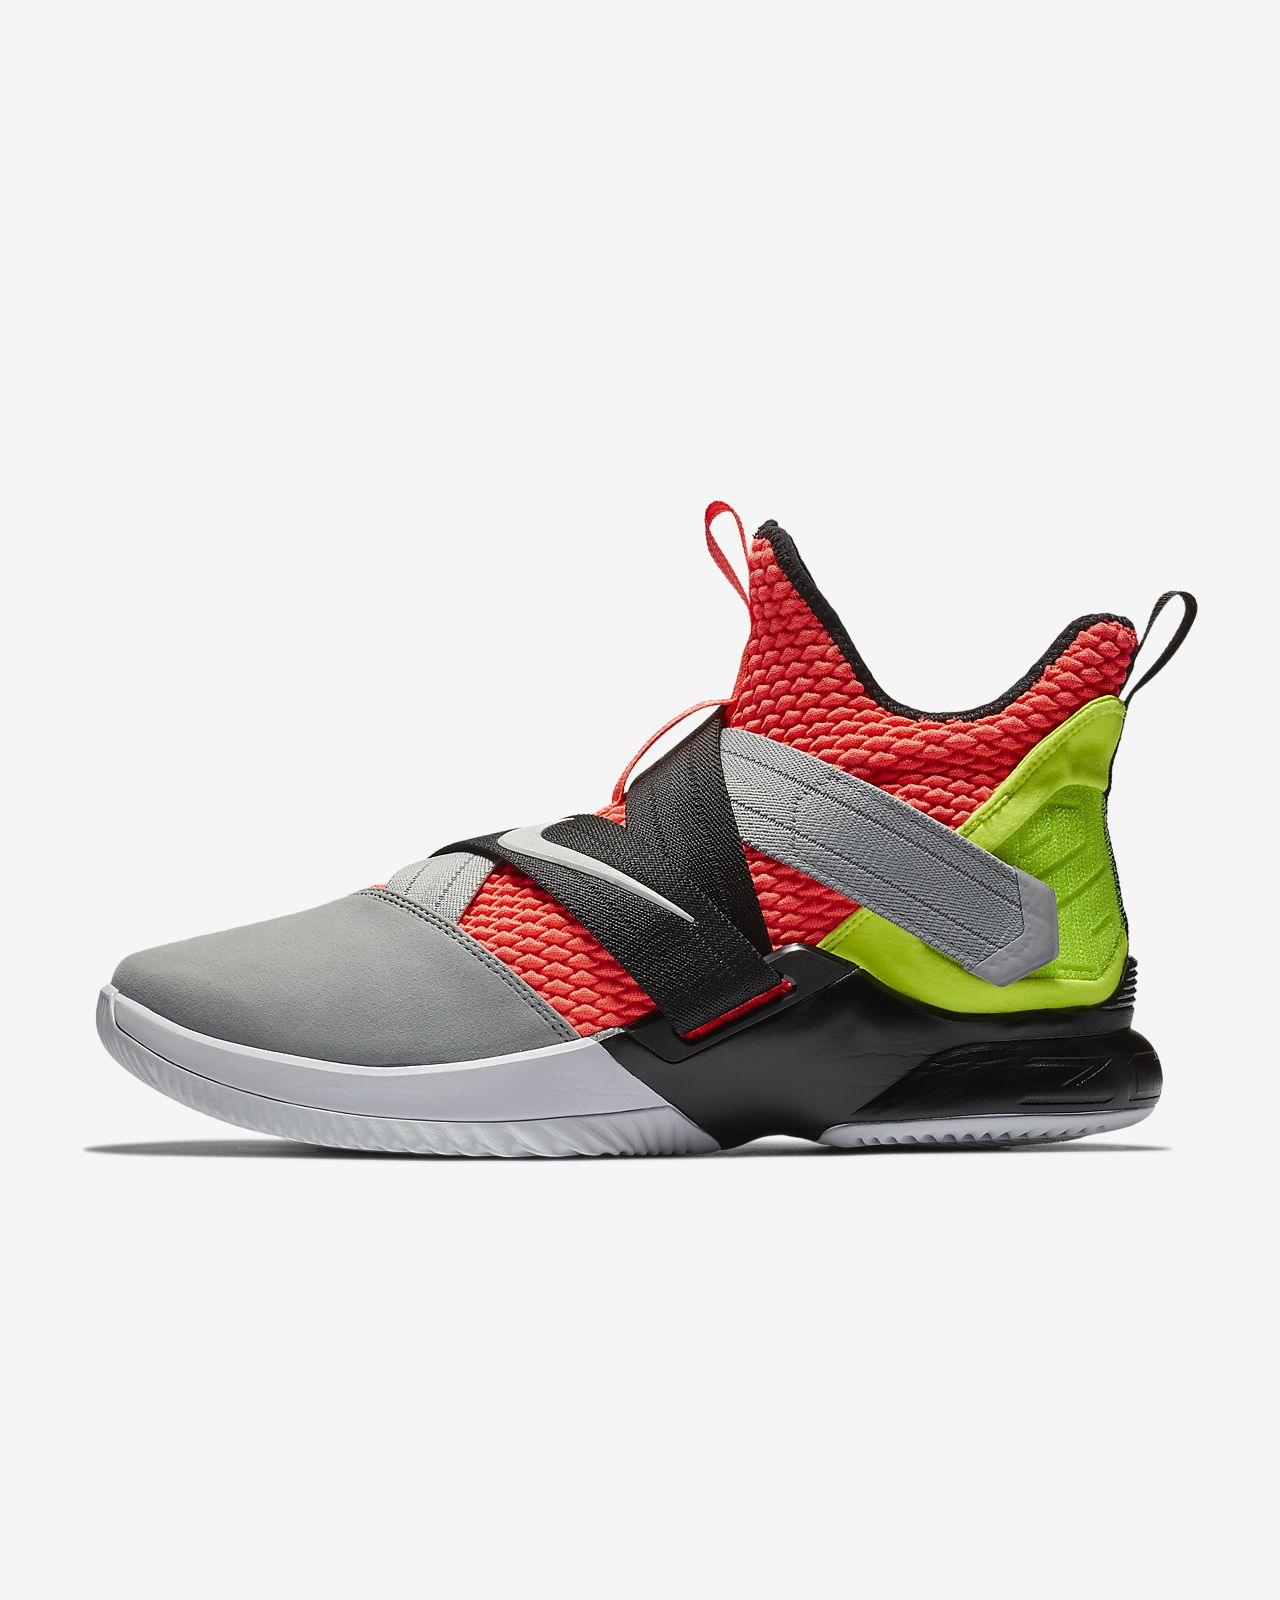 timeless design 2704f b36be LeBron Soldier 12 SFG Basketball Shoe